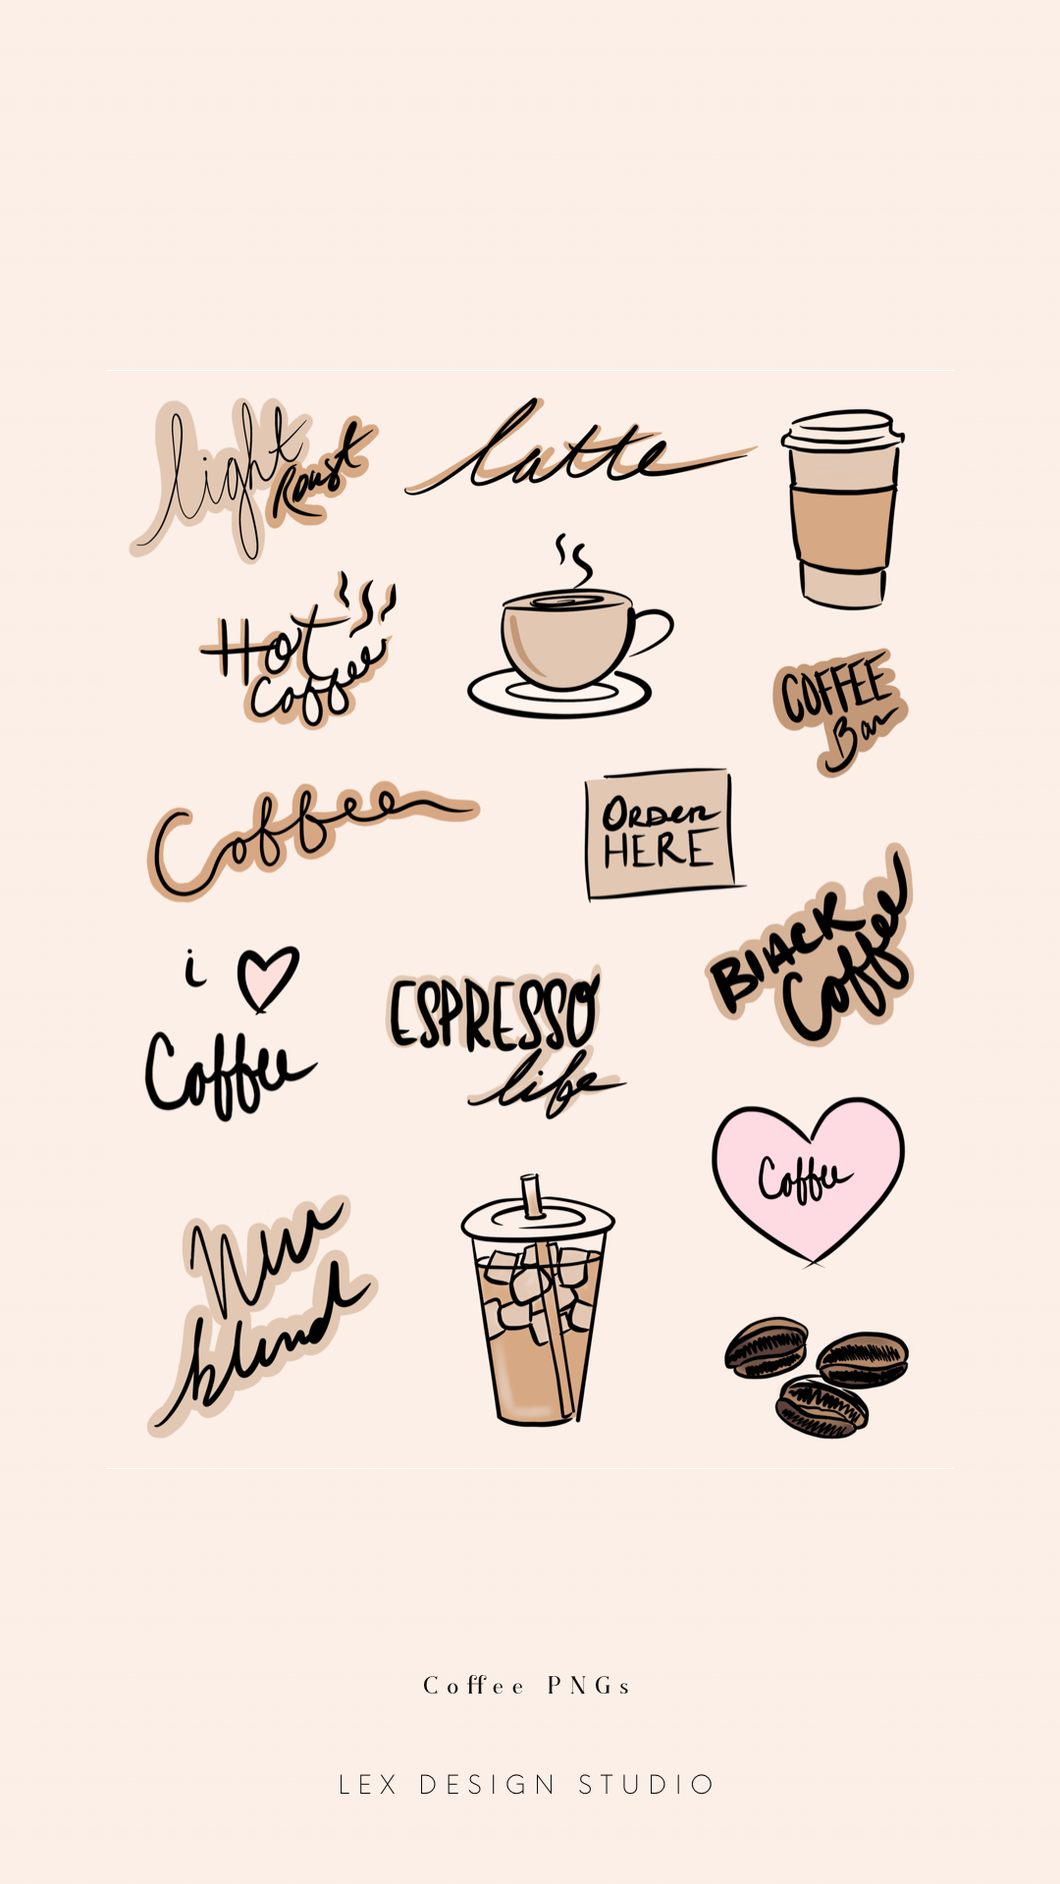 Coffee Hand Lettered PNGs: Digital Download